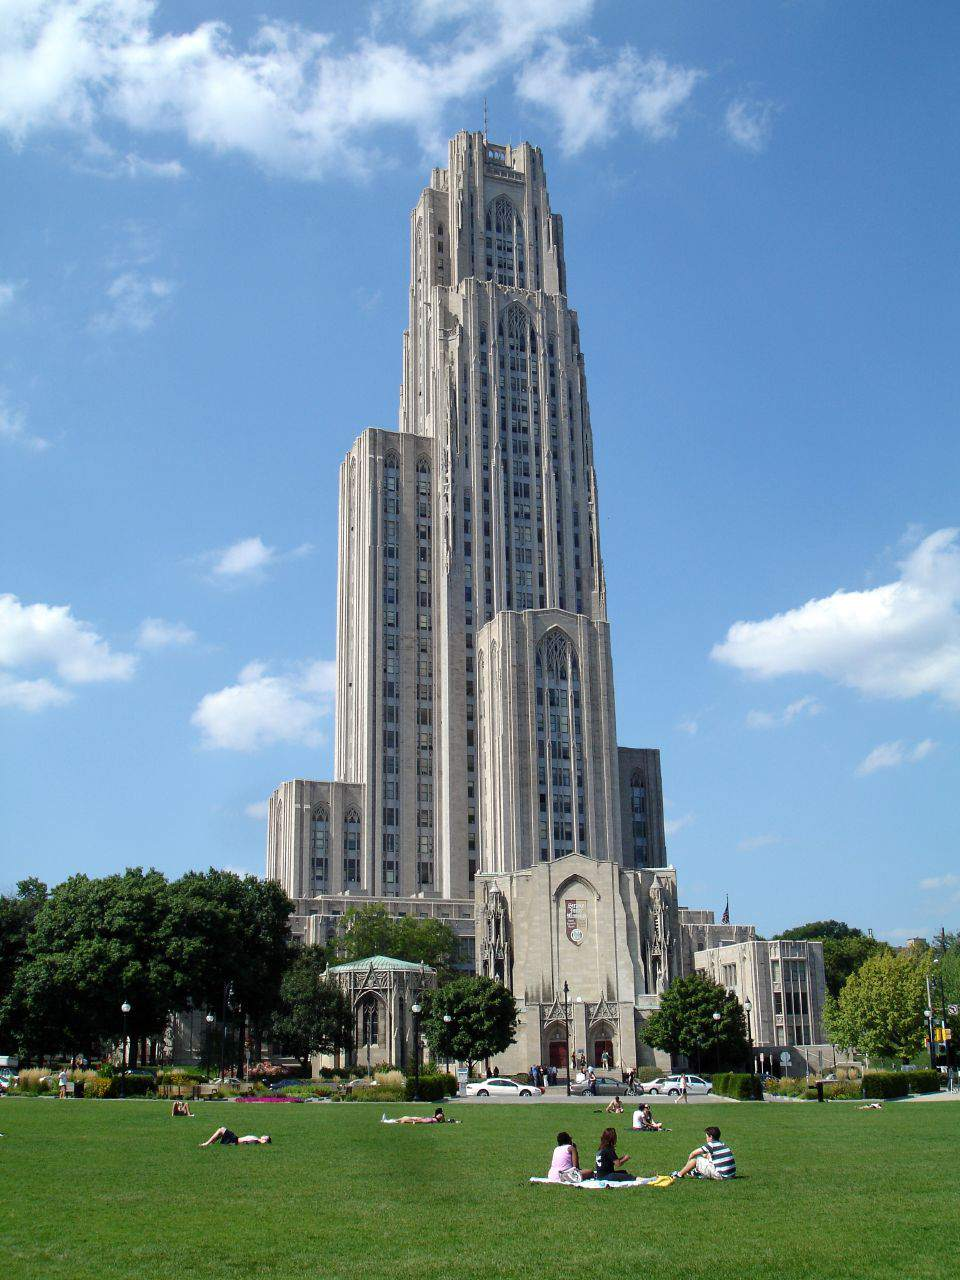 The Pittsburgh Cathedral of Learning in Oakland